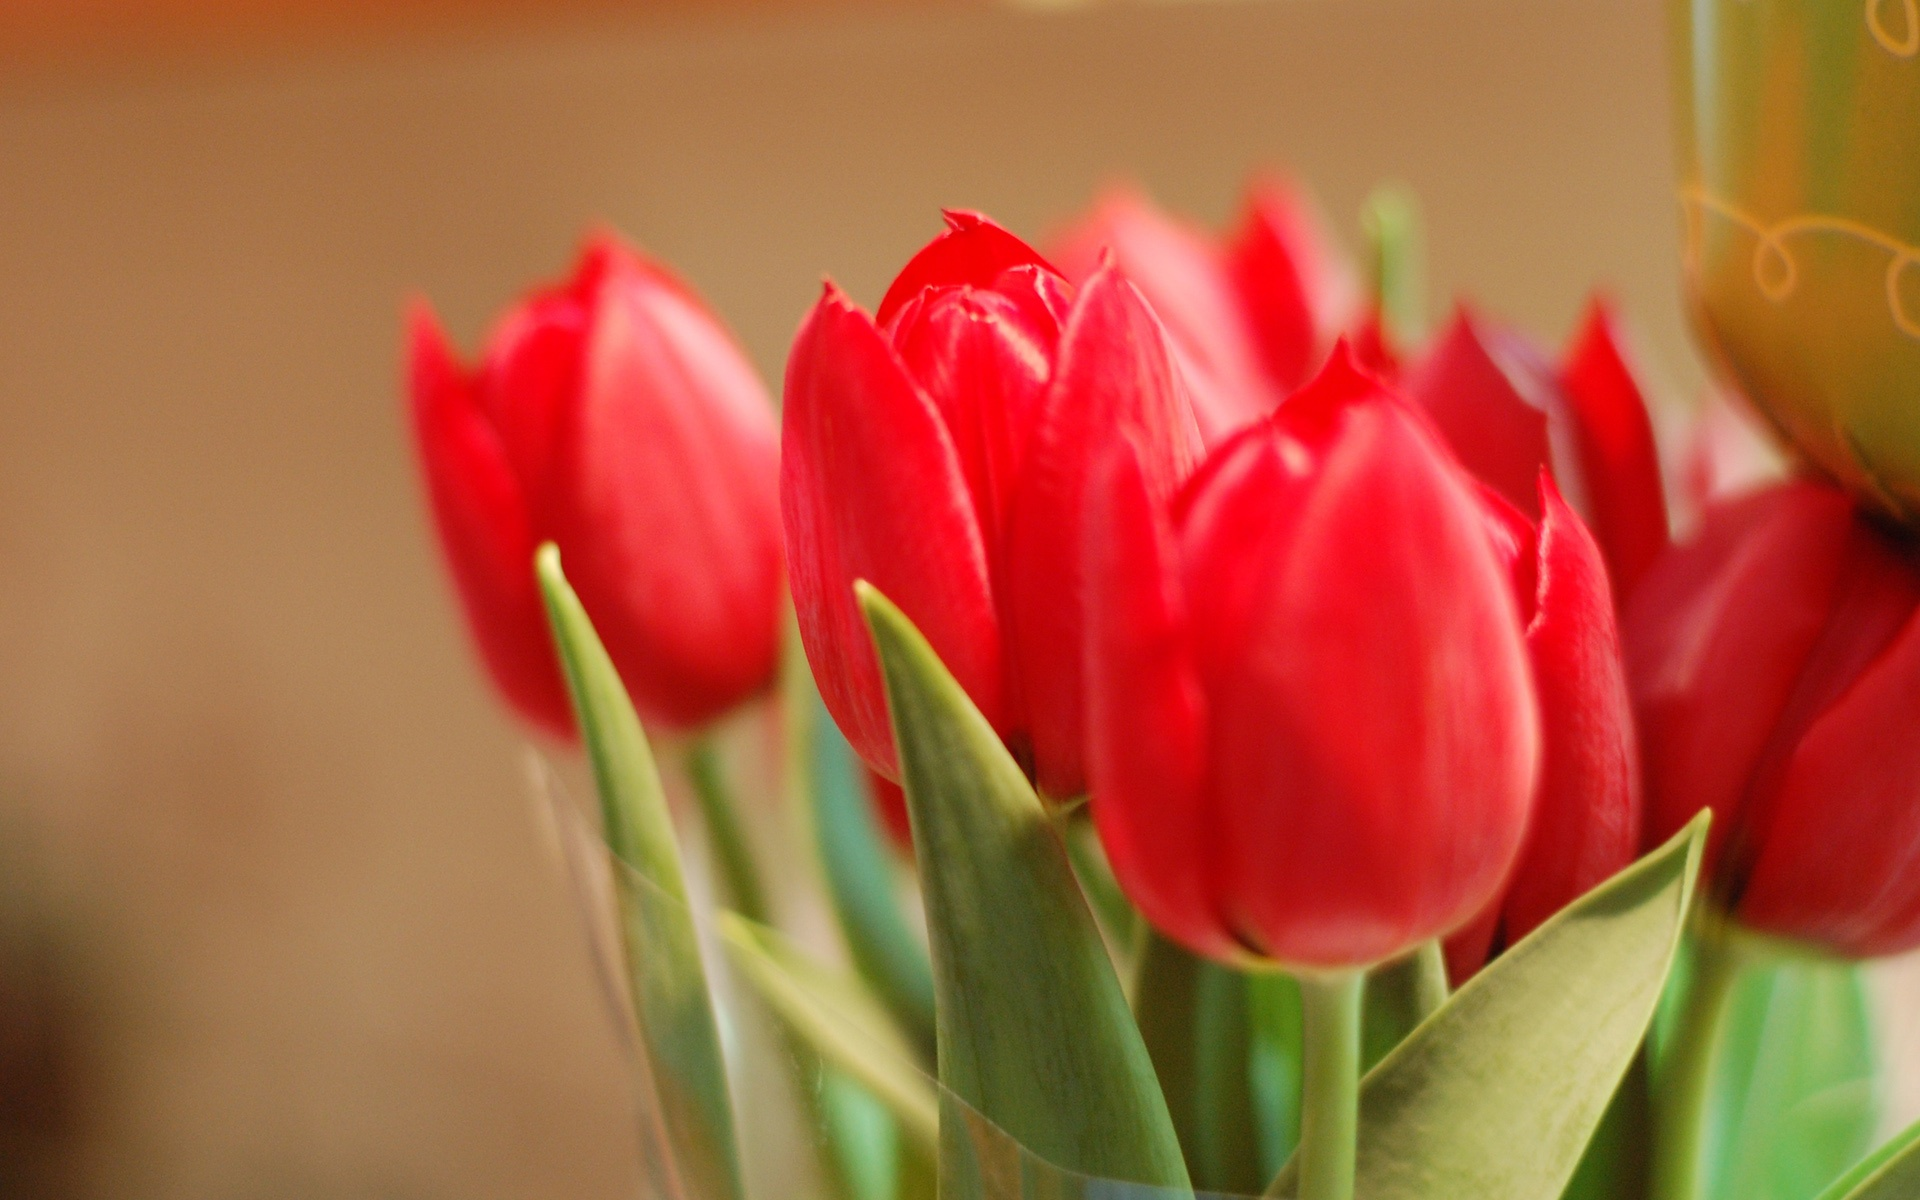 Bouquet red tulip flowers close-up wallpaper | flowers | Wallpaper ...